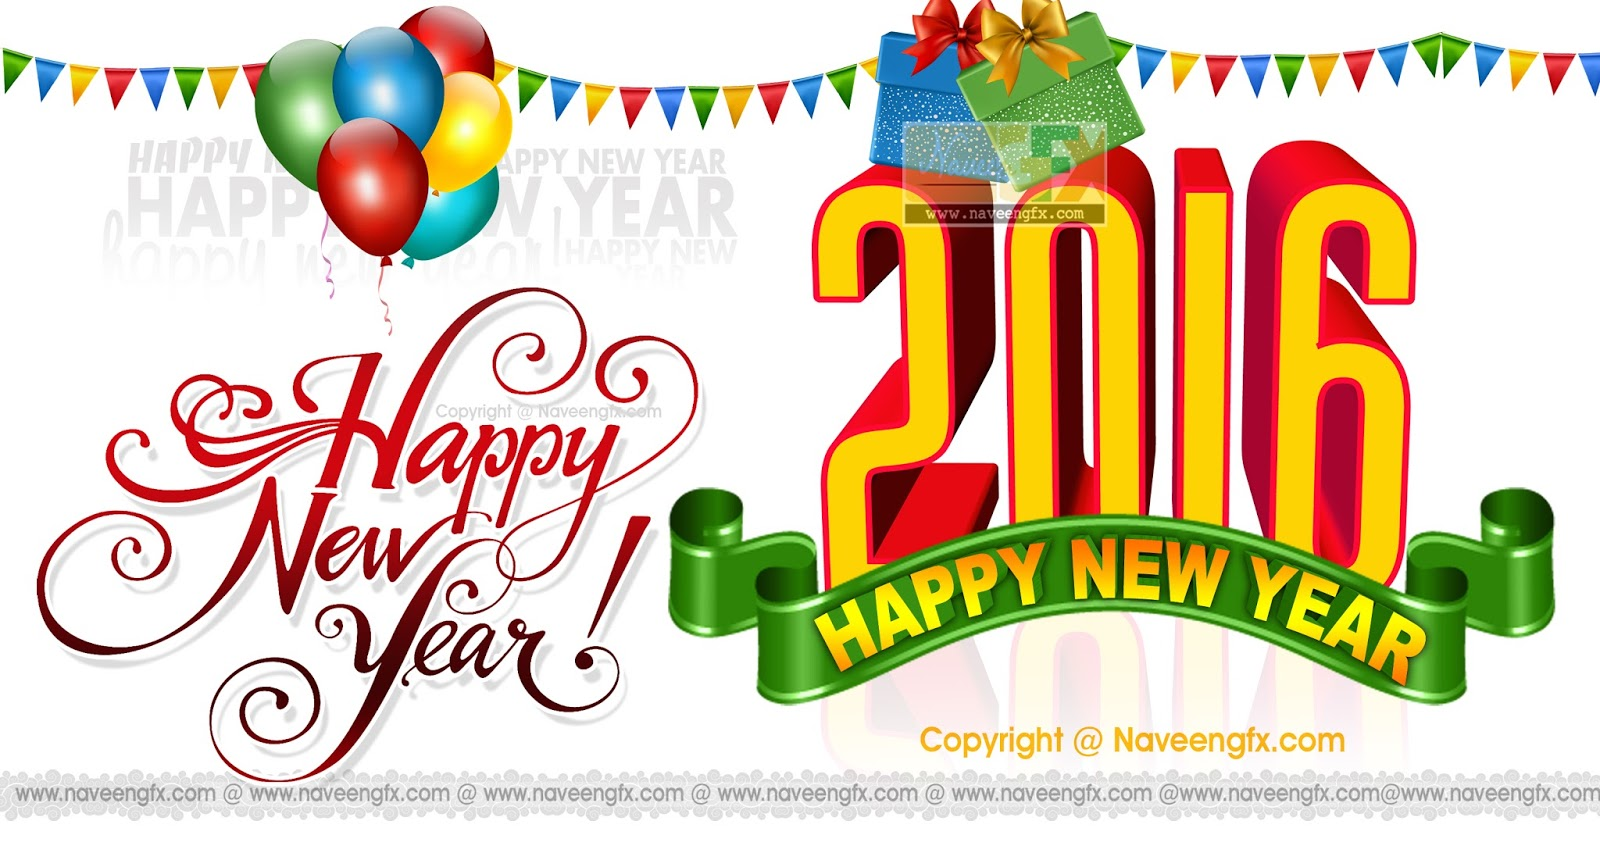 New Year clipart 2016 tamil New Mart inspirational happy Pinterest